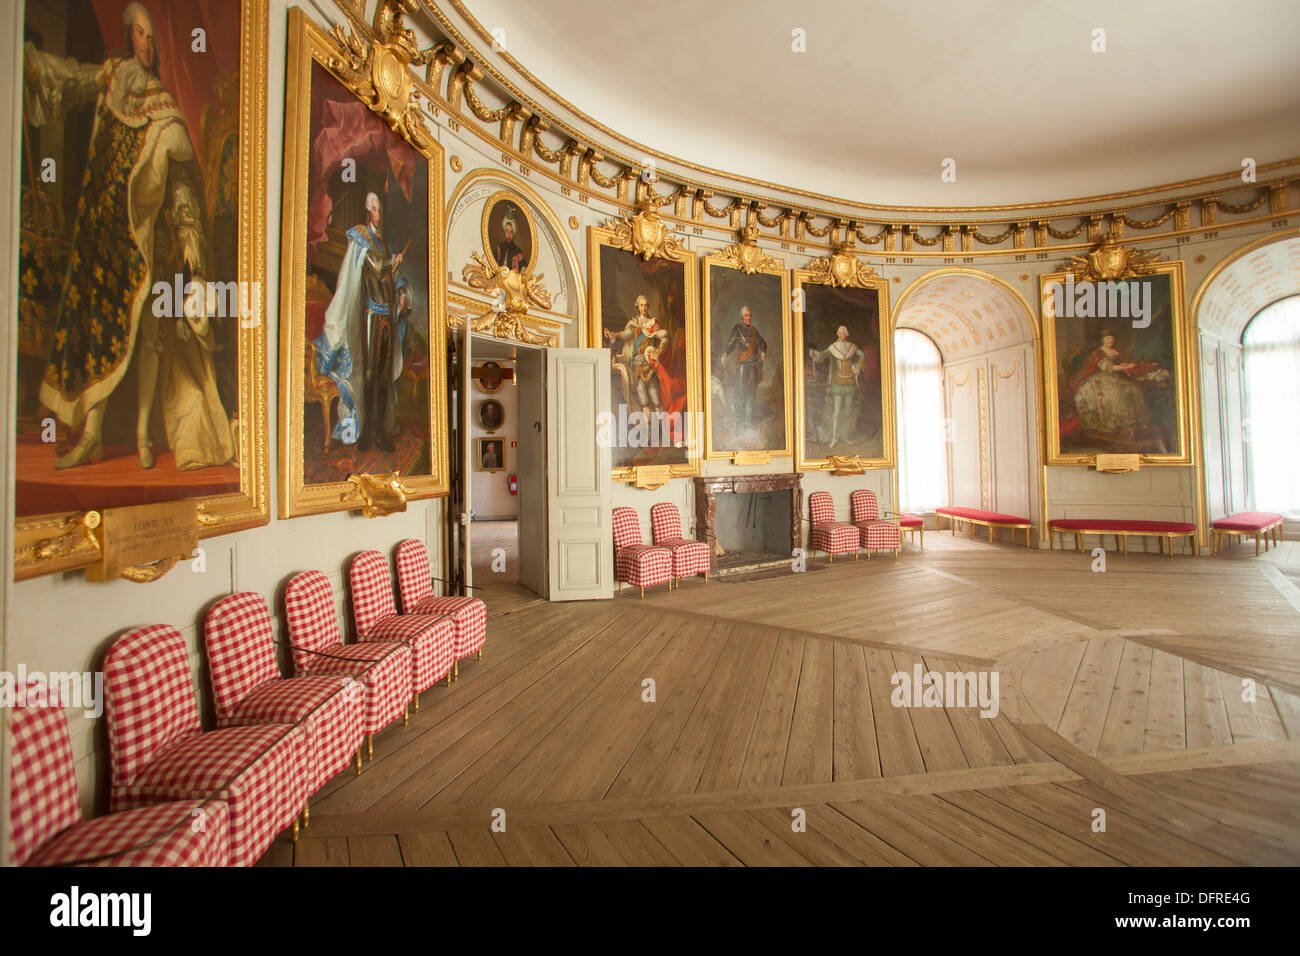 Sweden, Mariefred, Gripsholm Castle interiors - Stock Image